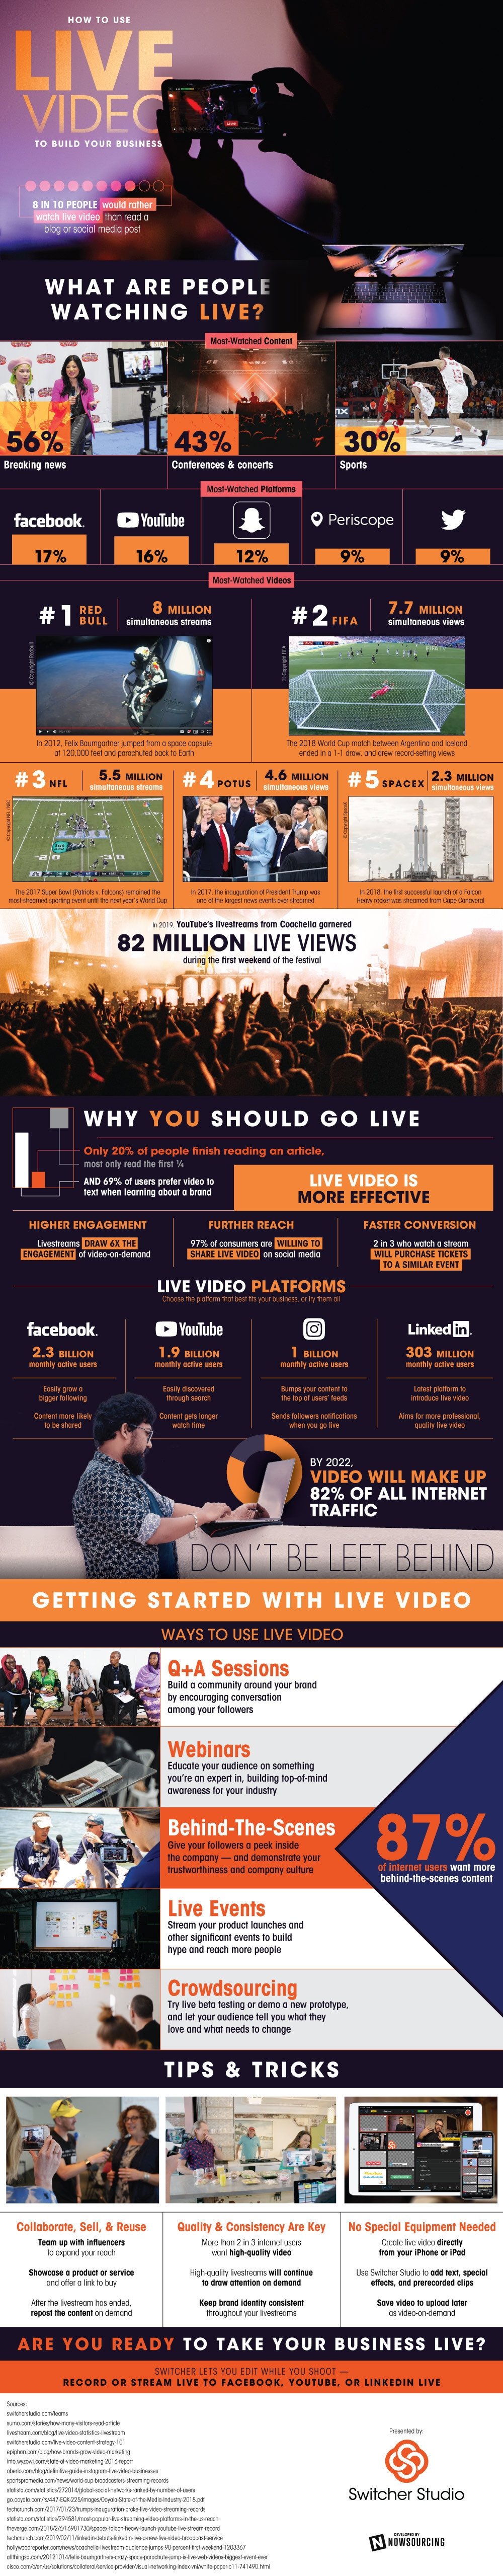 Live Video: Can It Help Build Your Business? [Infographic]